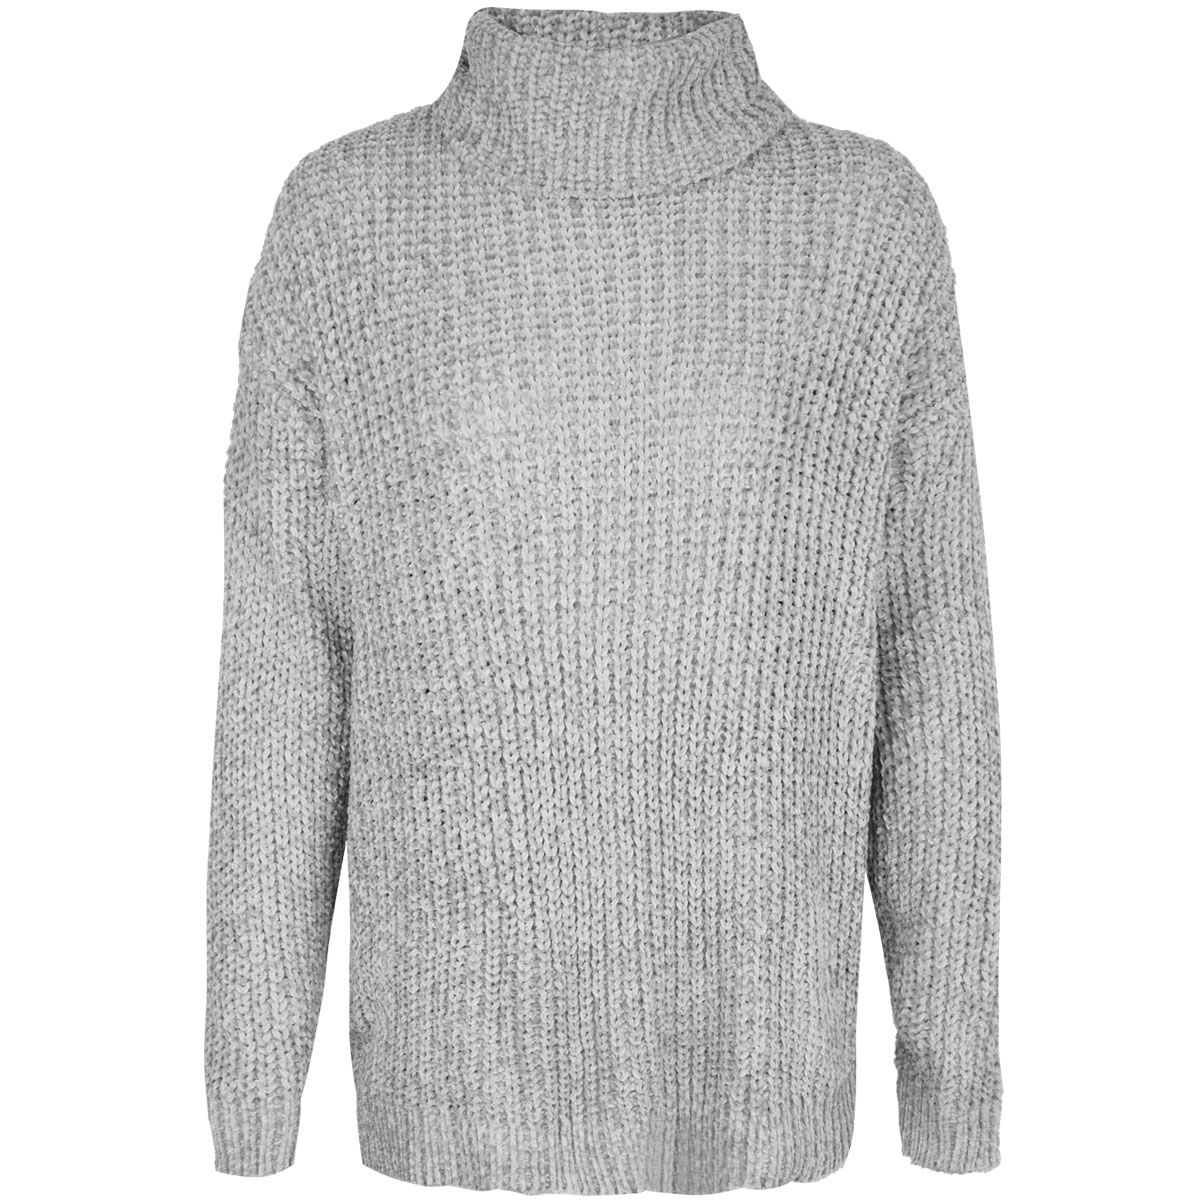 Womens Ladies Thick Jumper Winter Sweater Top Chunky